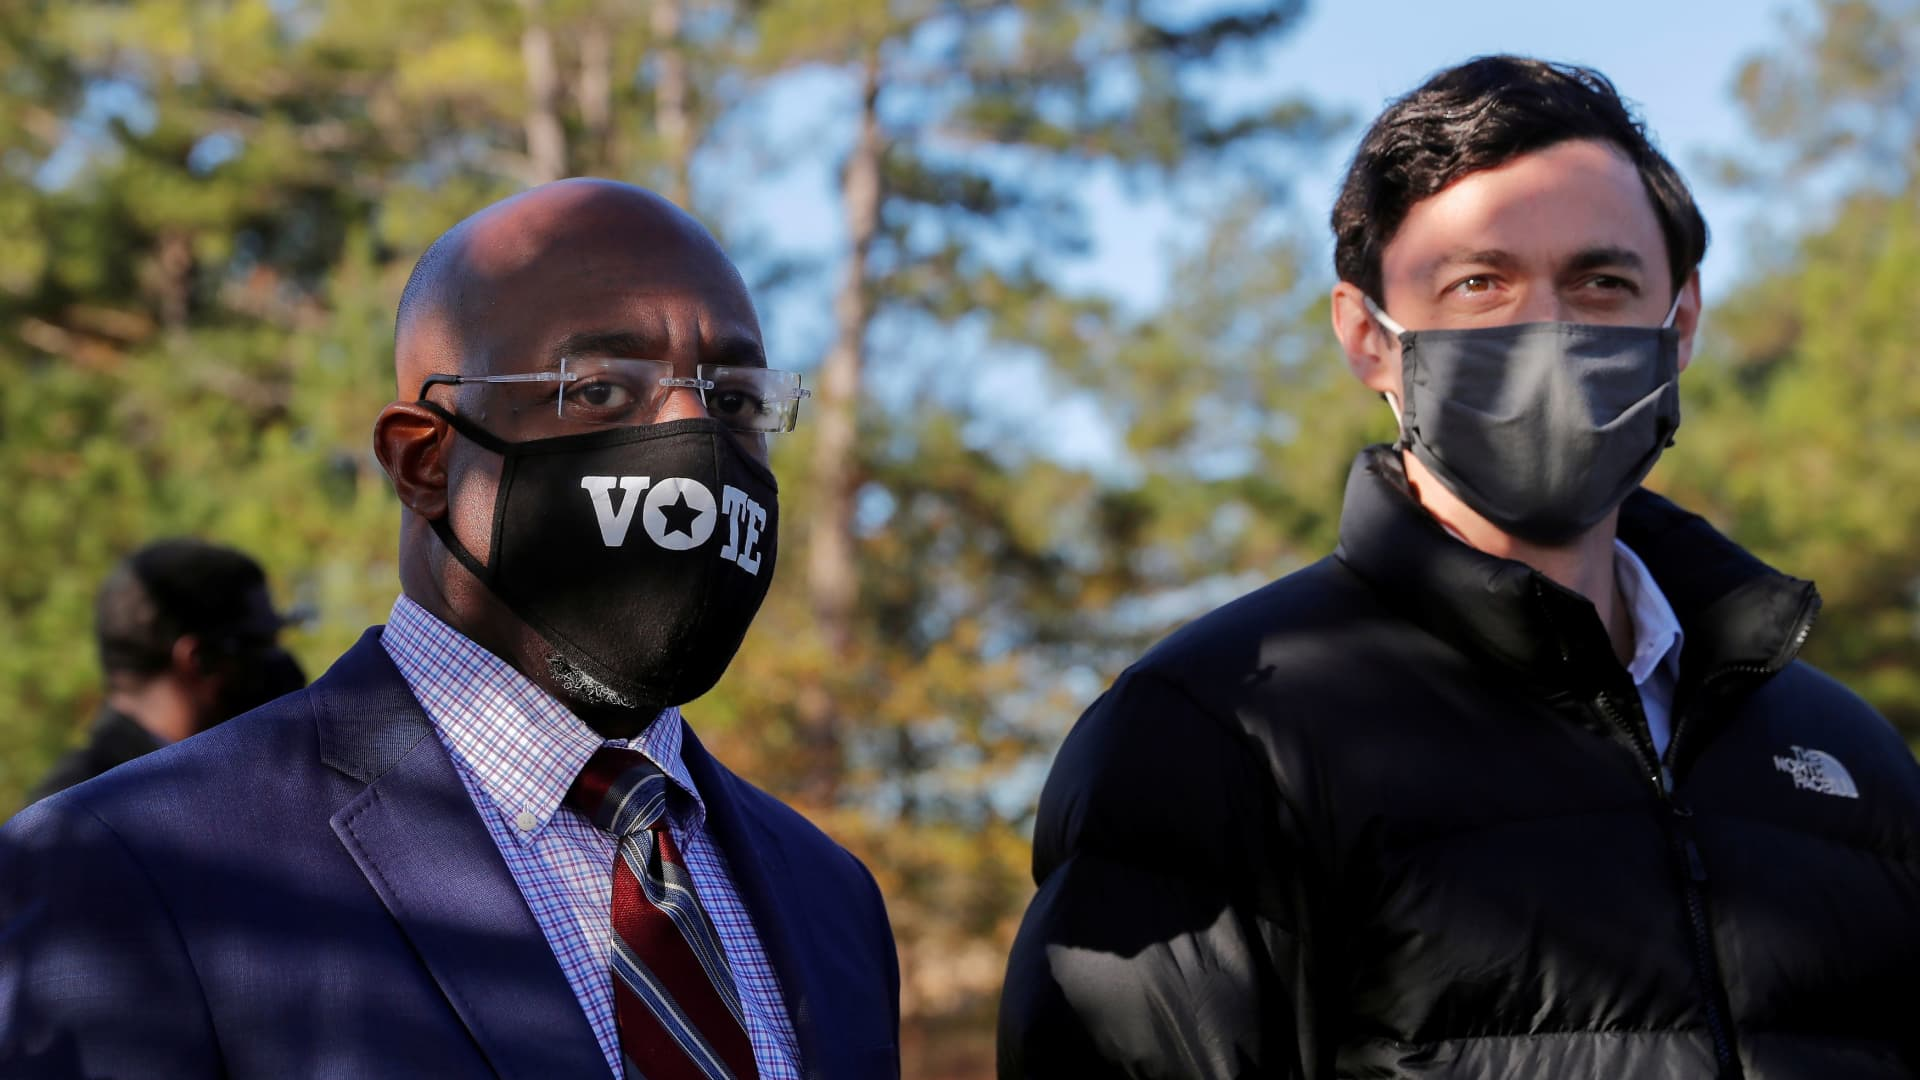 Democratic U.S. Senate candidates Jon Ossoff and Rev. Raphael Warnock look on as they appear together at a campaign rally ahead of U.S. Senate runoff elections in Augusta, Georgia, U.S. January 4, 2021.